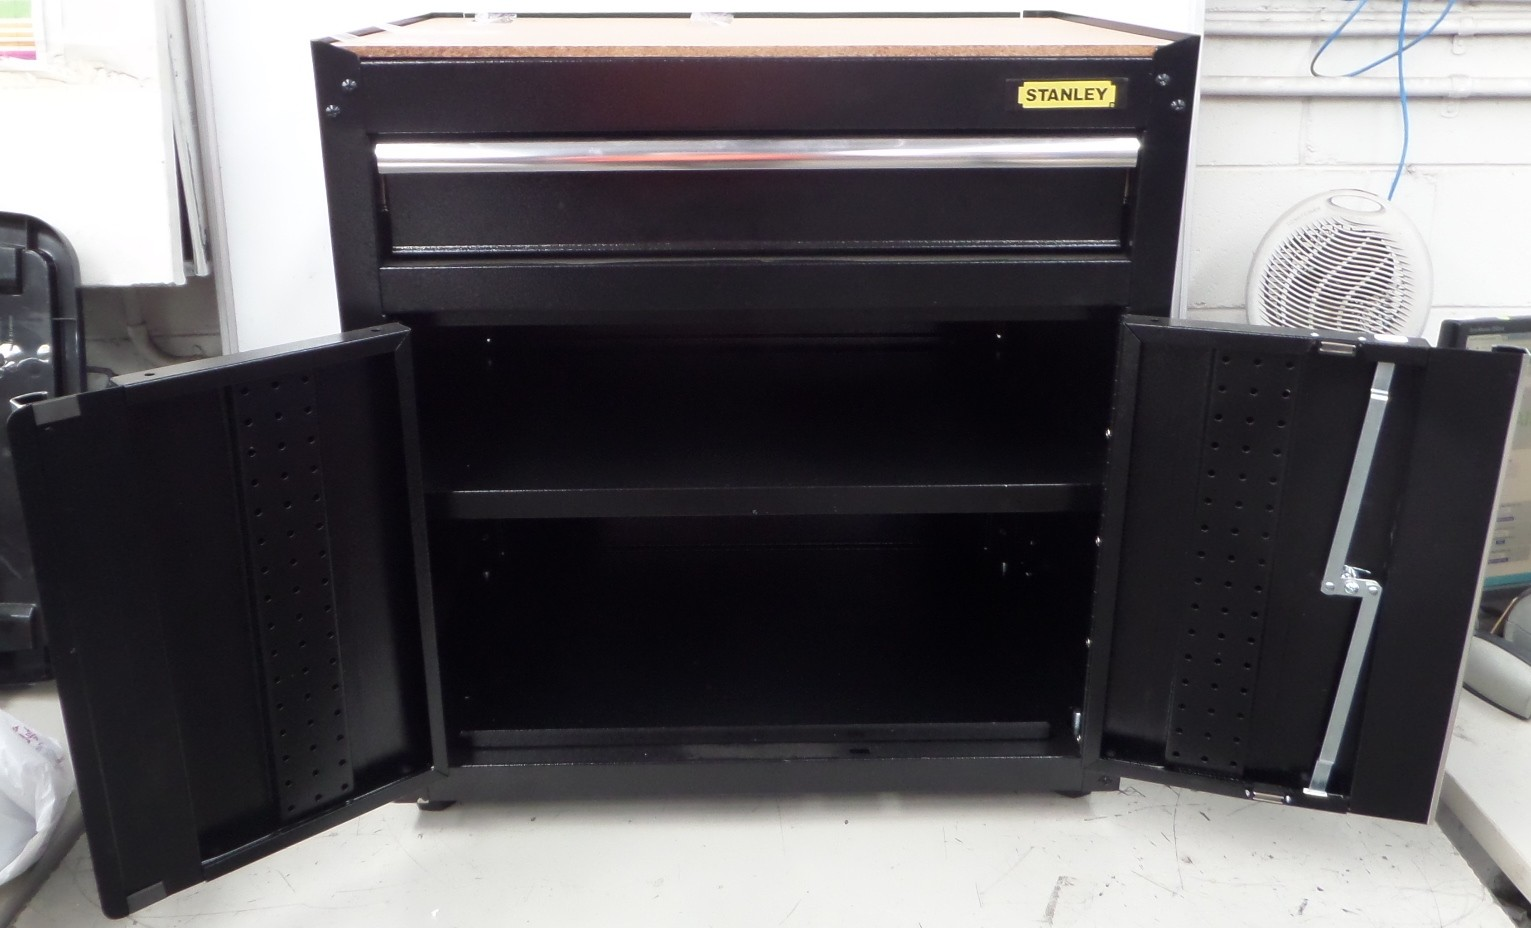 Stanley work station cabinet brand lot 817362 allbids for Auctions kitchen cabinets